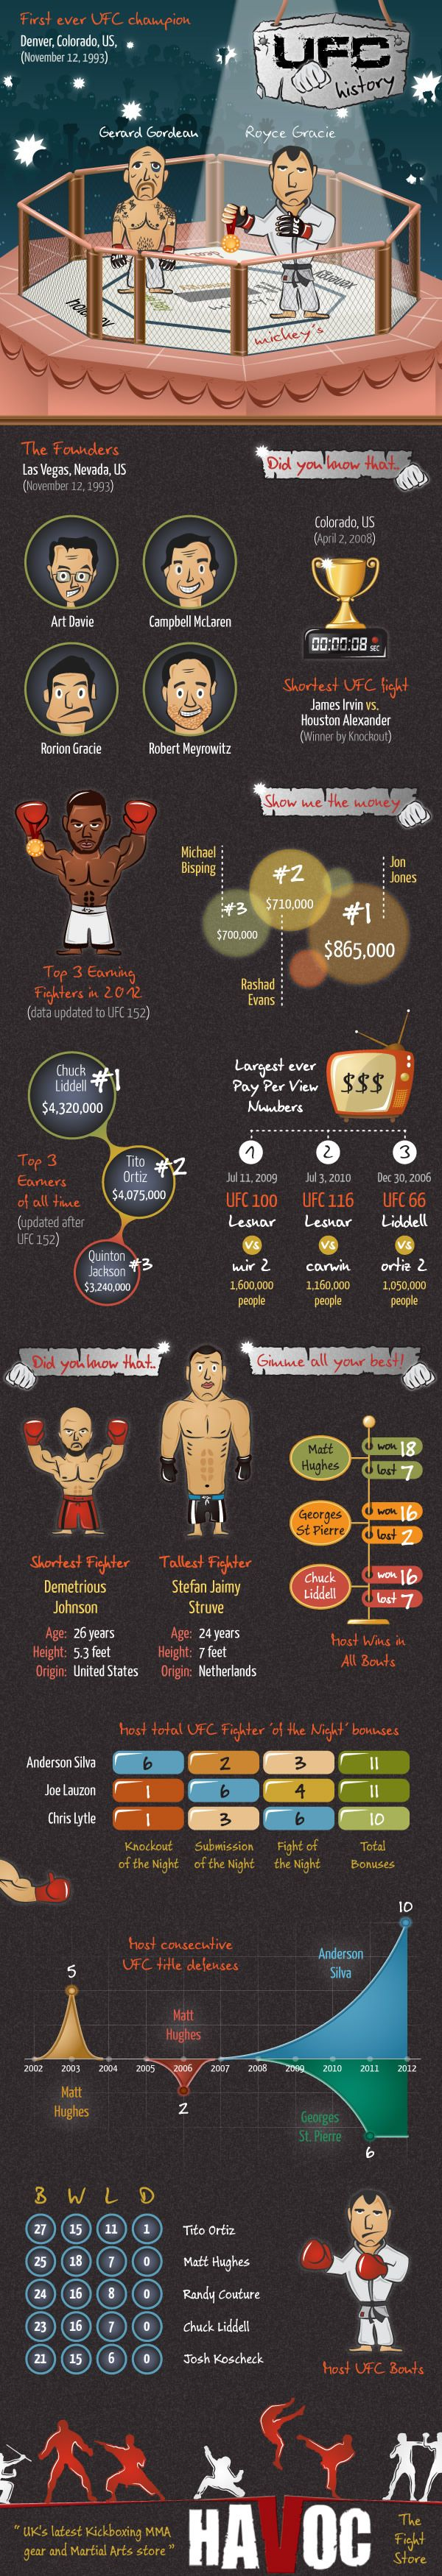 UFC History: Facts and Figures